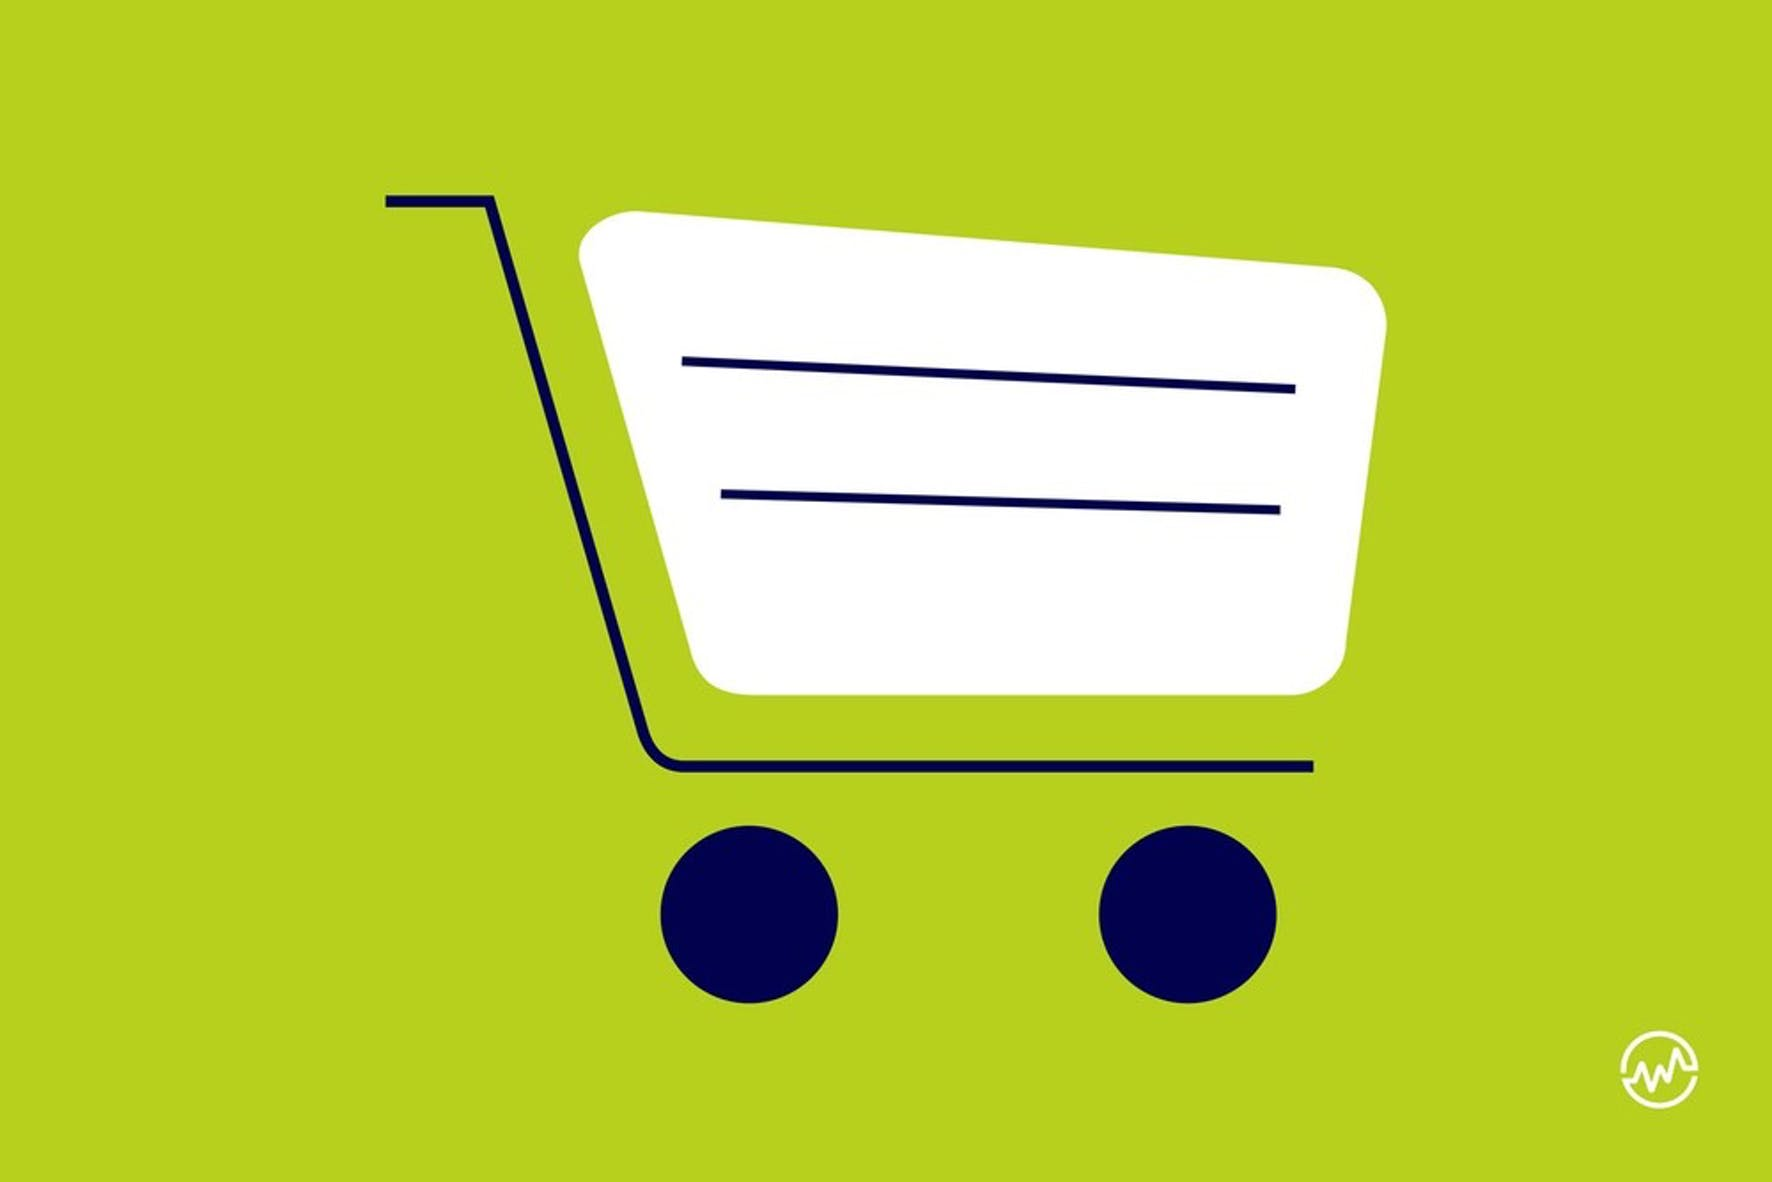 An outline of a shopping cart on a green background